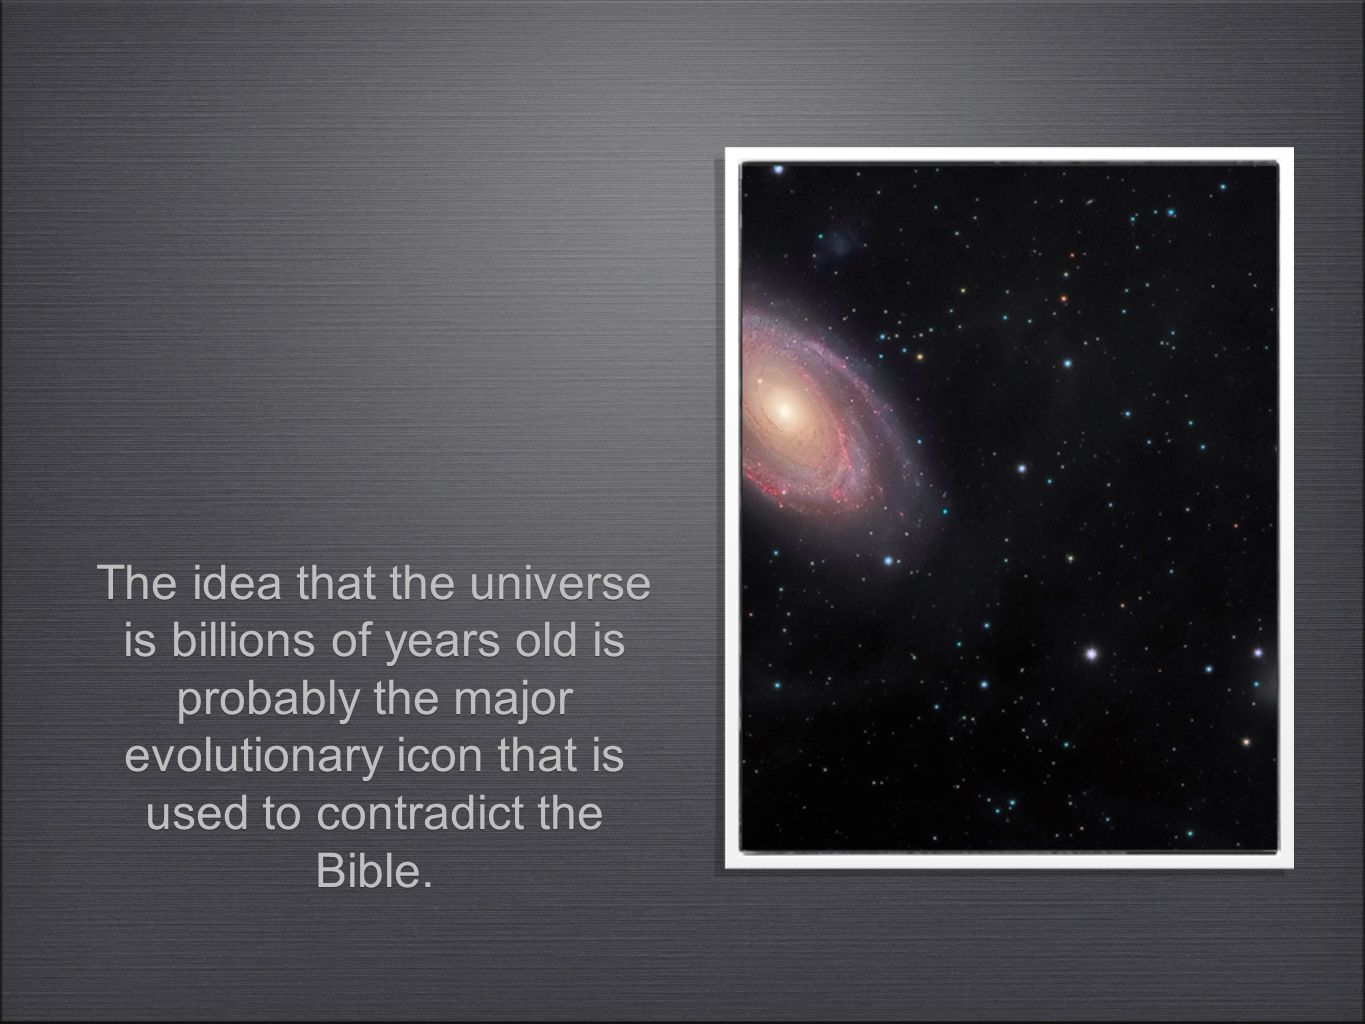 The idea that the universe is billions of years old is probably the major evolutionary icon that is used to contradict the Bible.